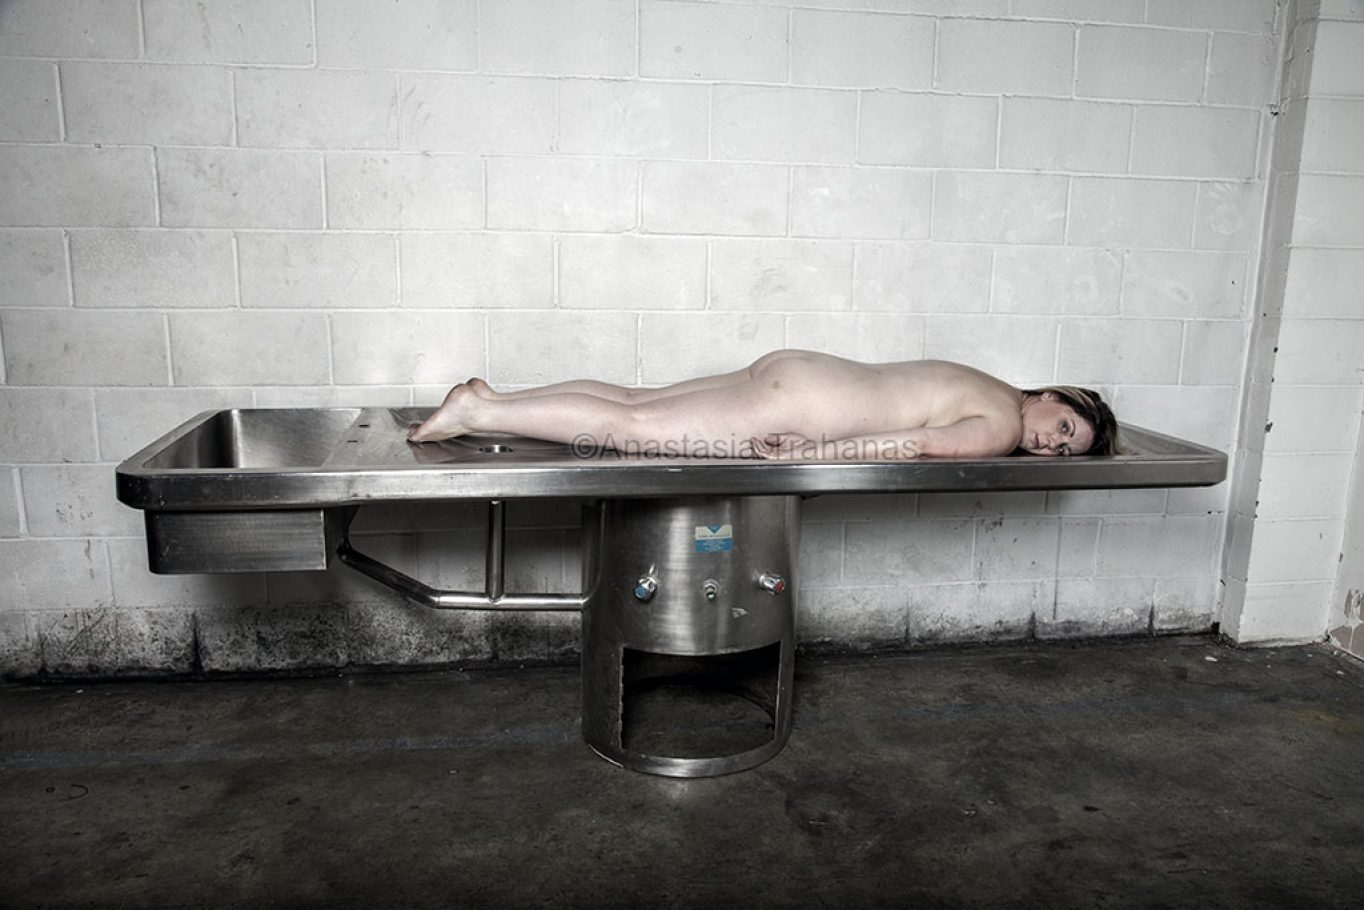 Naked woman on mortuary table